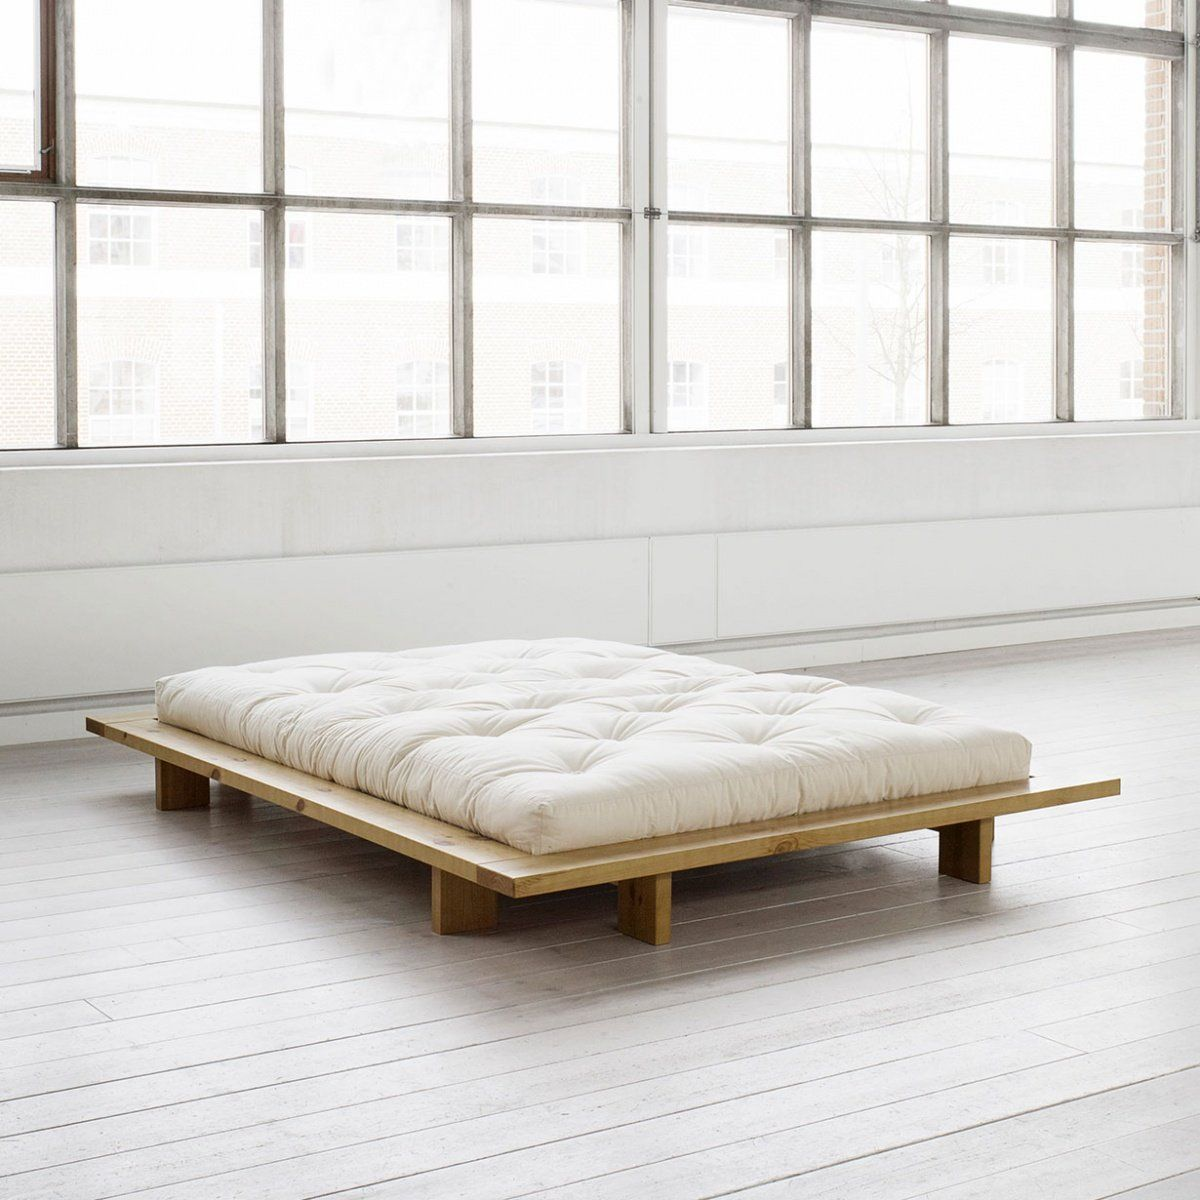 Traditional japanese bedroom futon - Karup Japan Bed Is A Simplistic Model Made Of Norse Firwood And A Comfortable Futon Mattresses